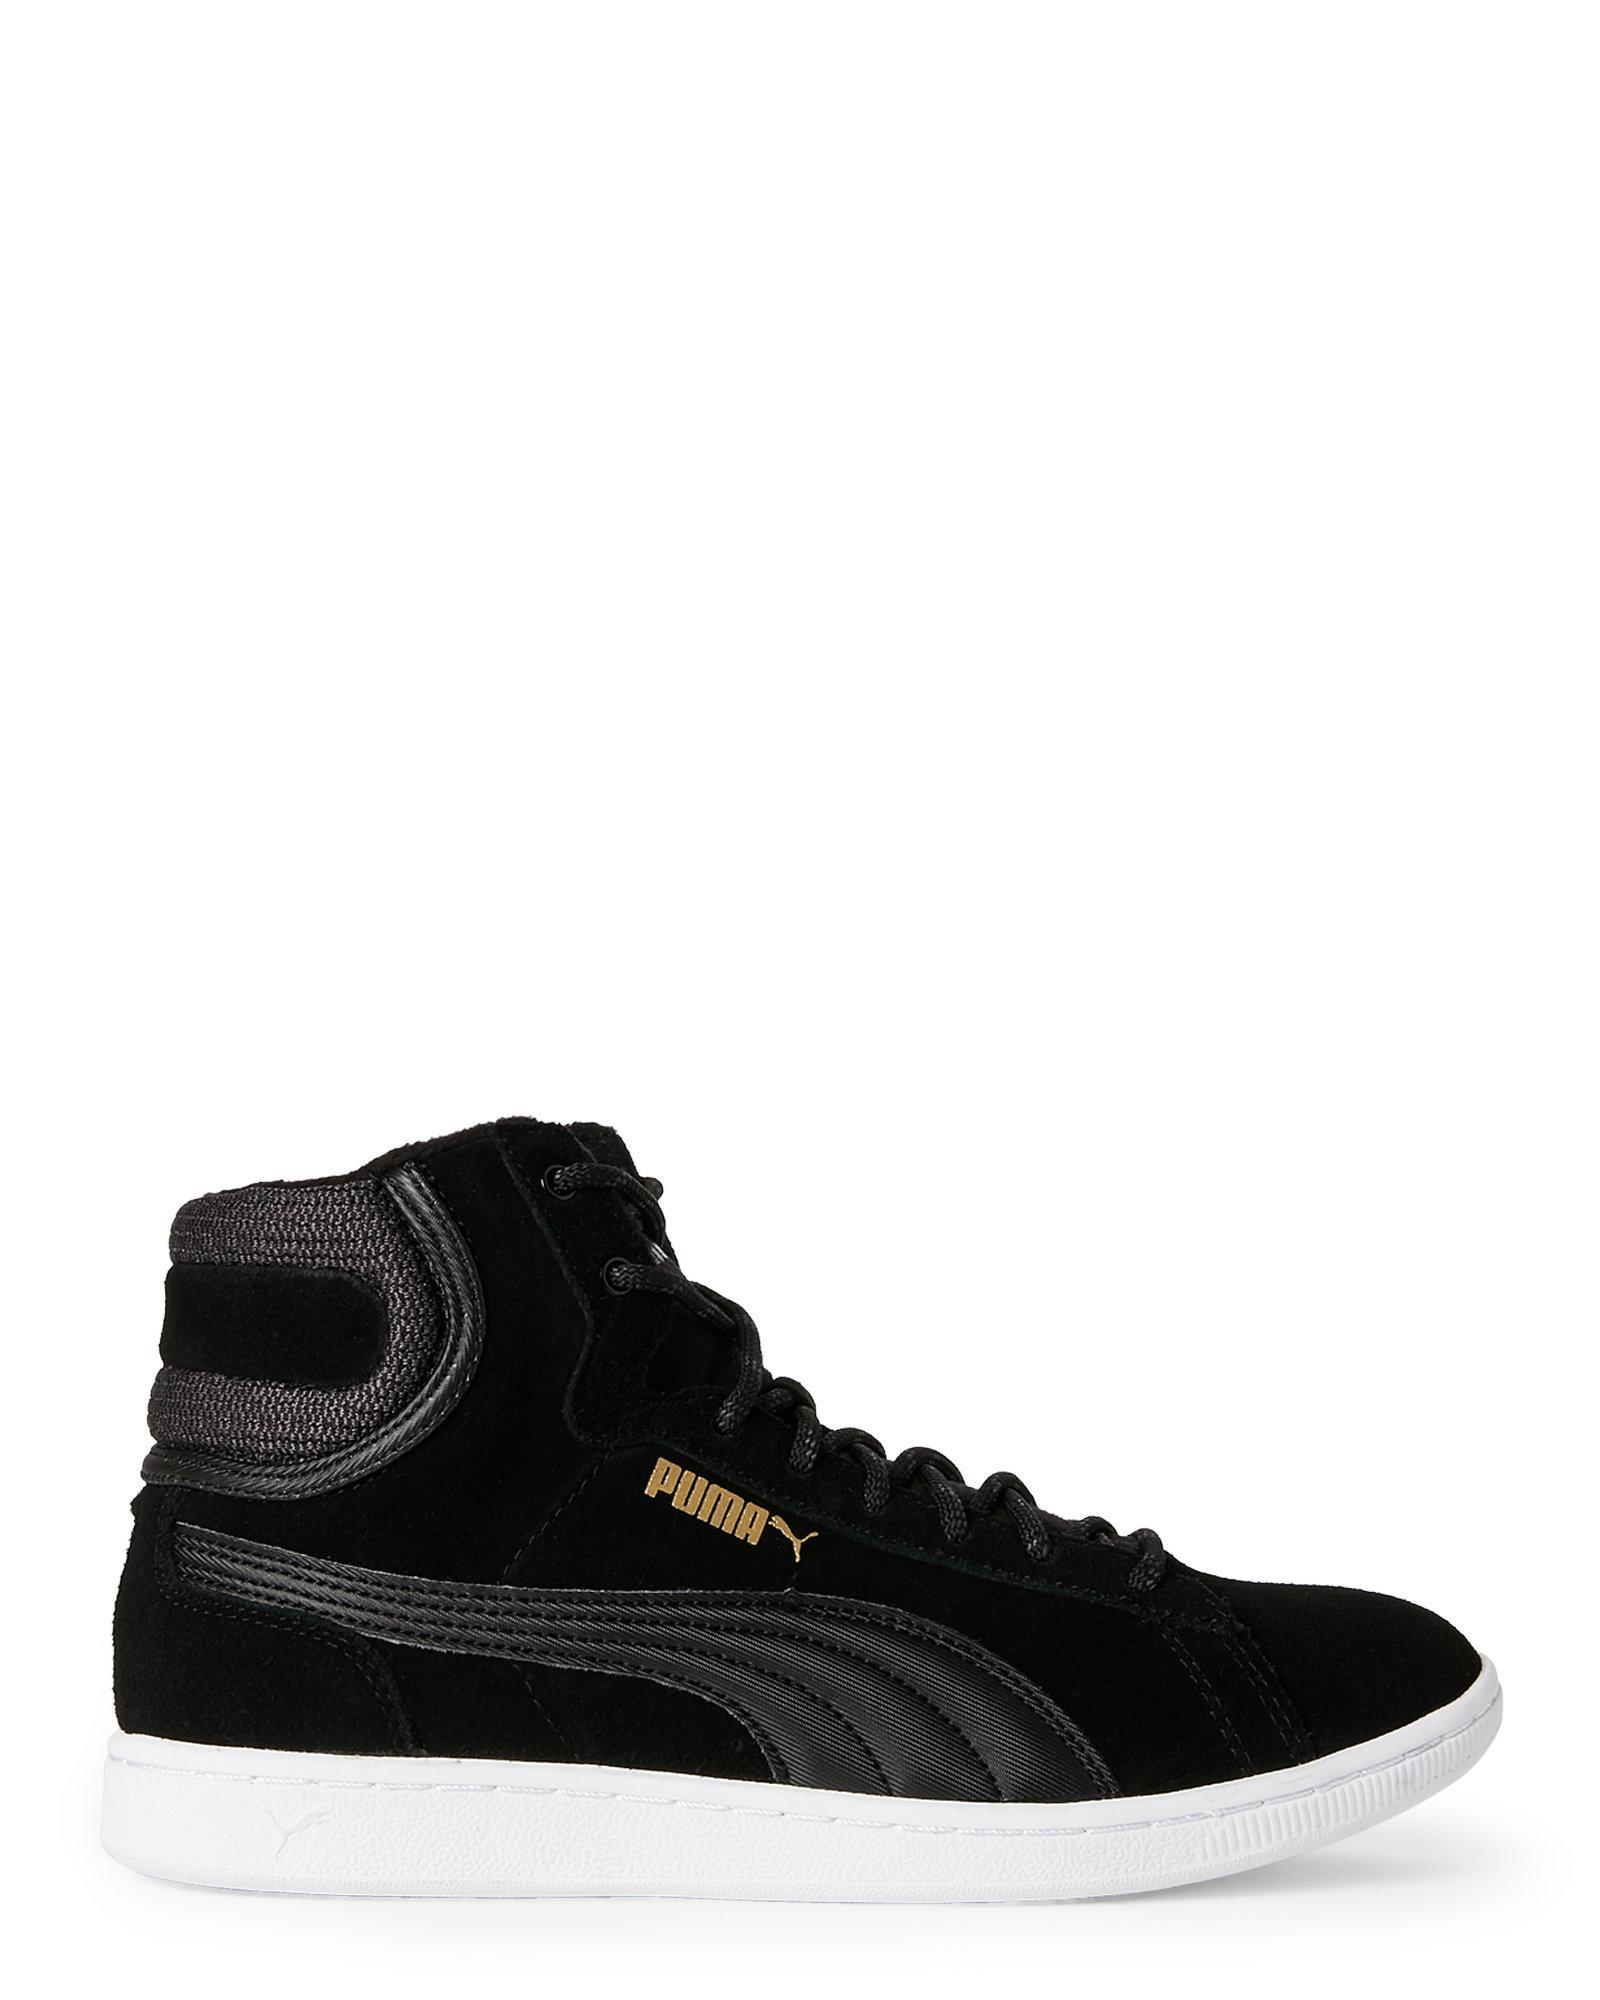 huge discount f70ea 99bd6 PUMA Black Vikky Mid Twill Sneakers in Black for Men - Lyst